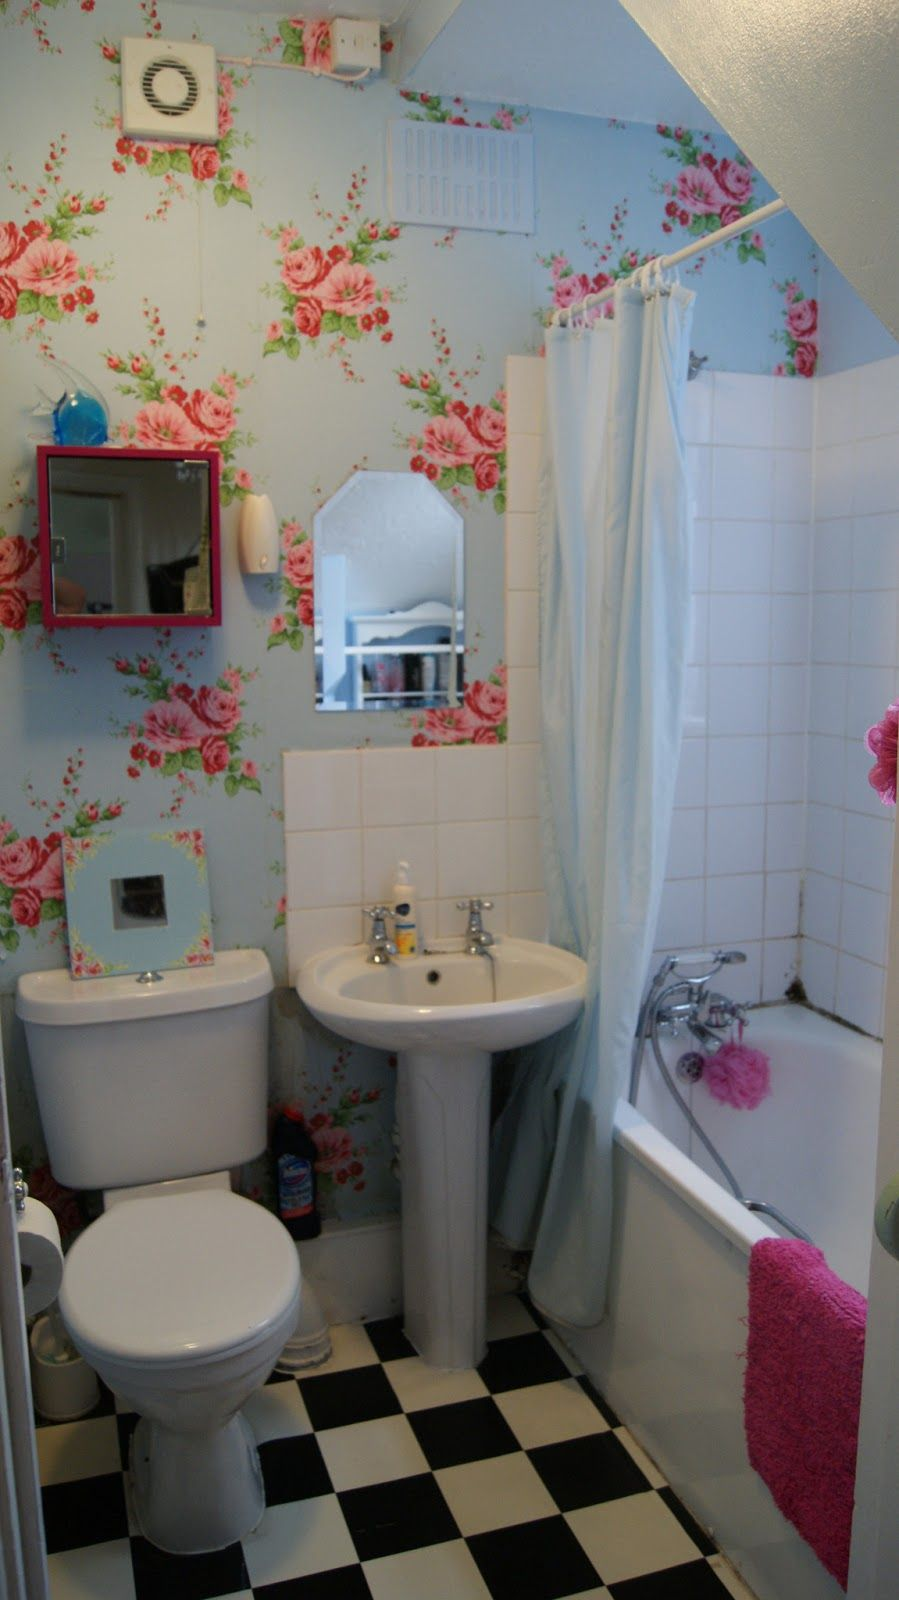 Lavish Very Small Bathroom Design Idea With Blue Wallpaper With Red Floral Motive White Bathtub